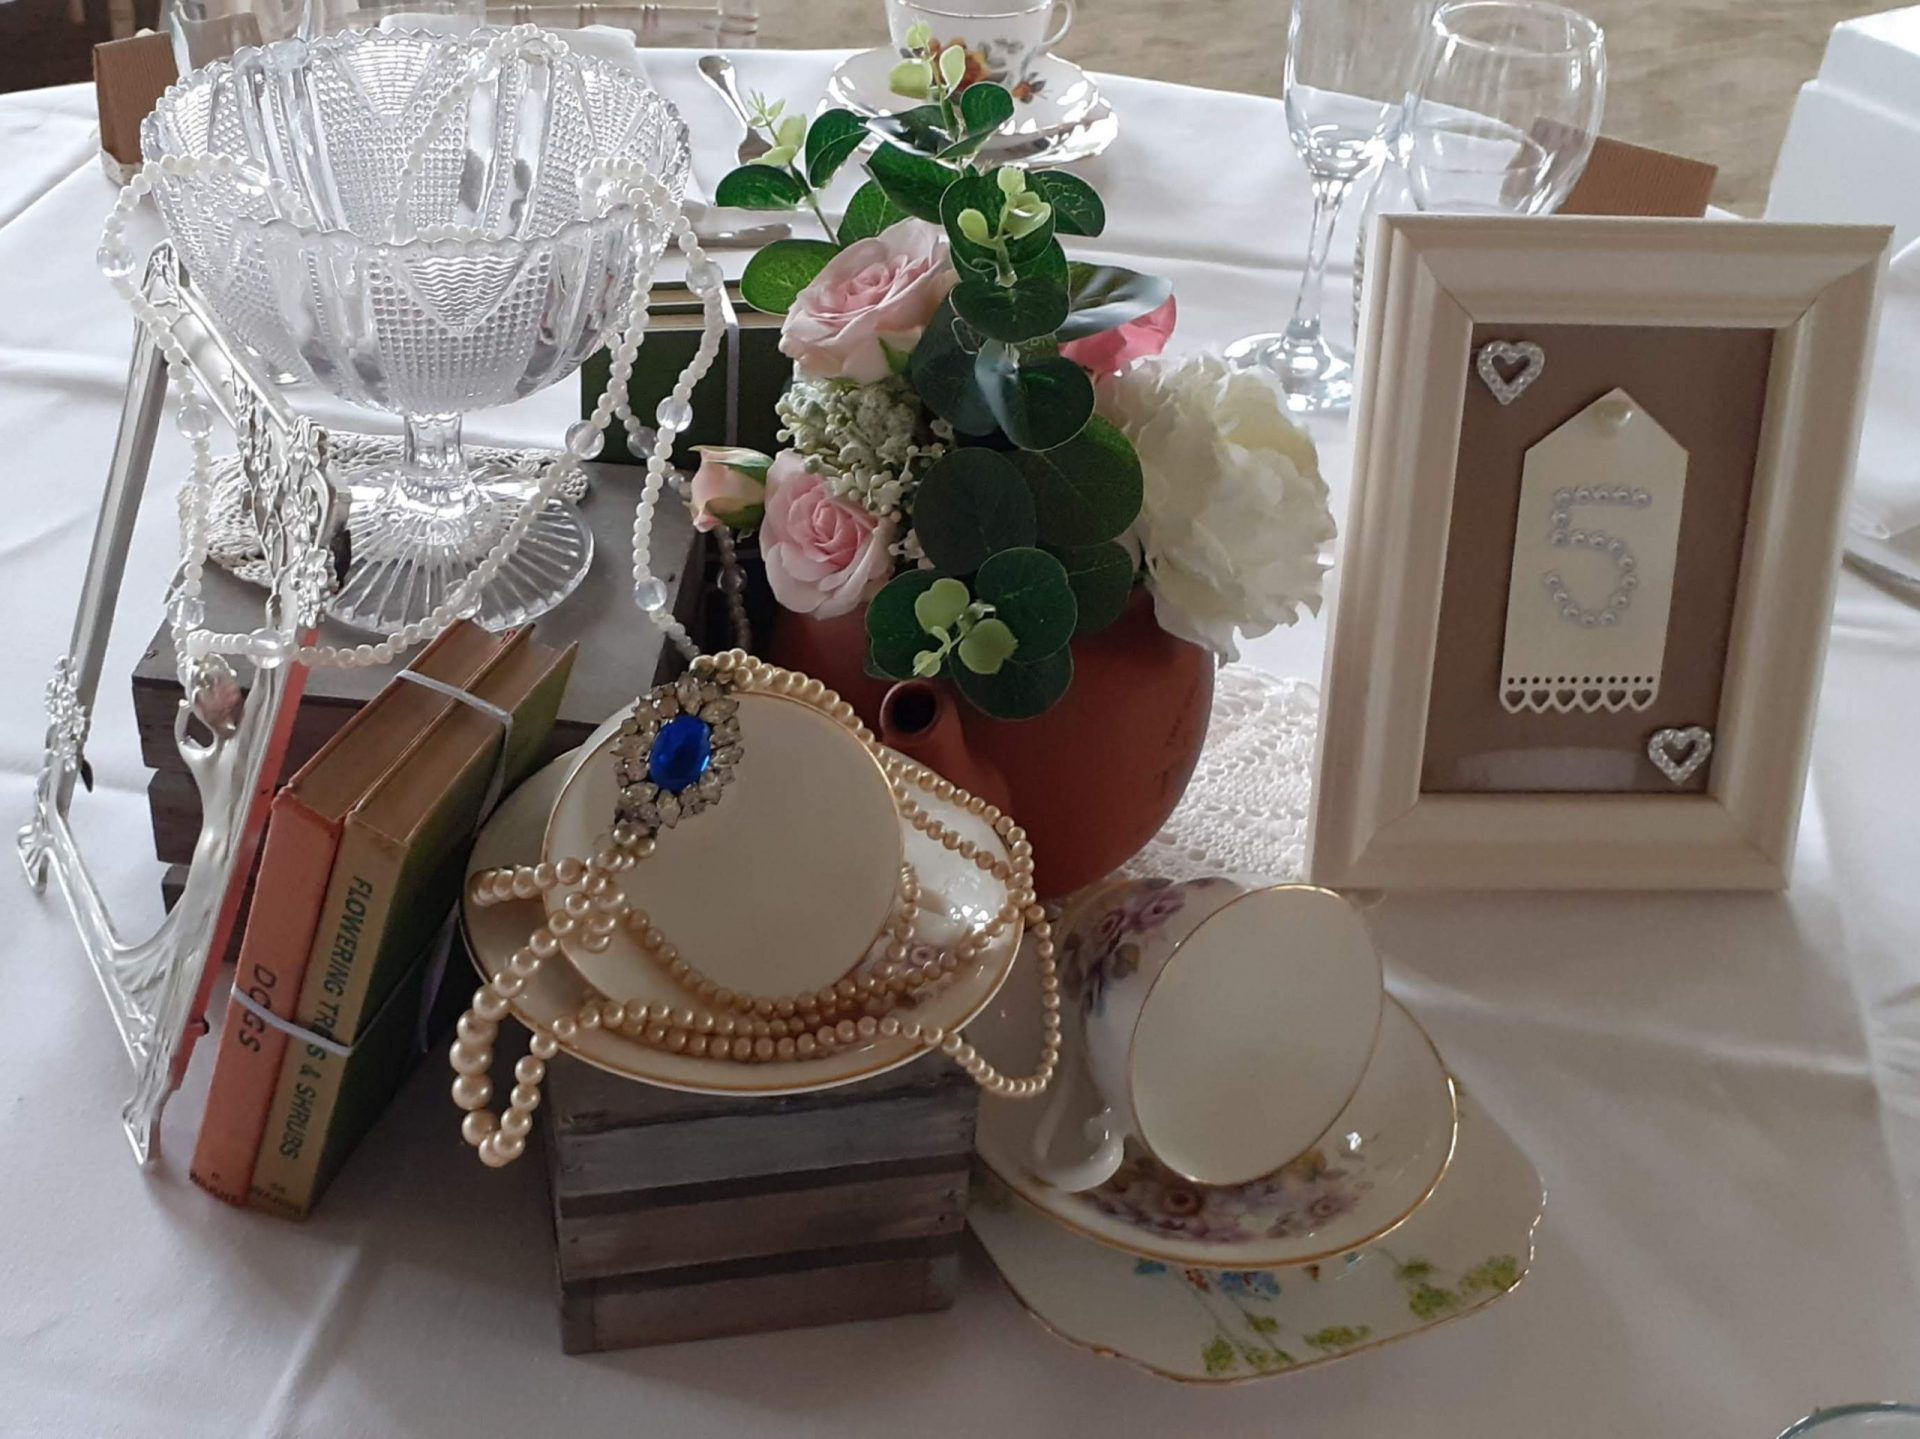 Vintage Inspired Table Center with Table Number